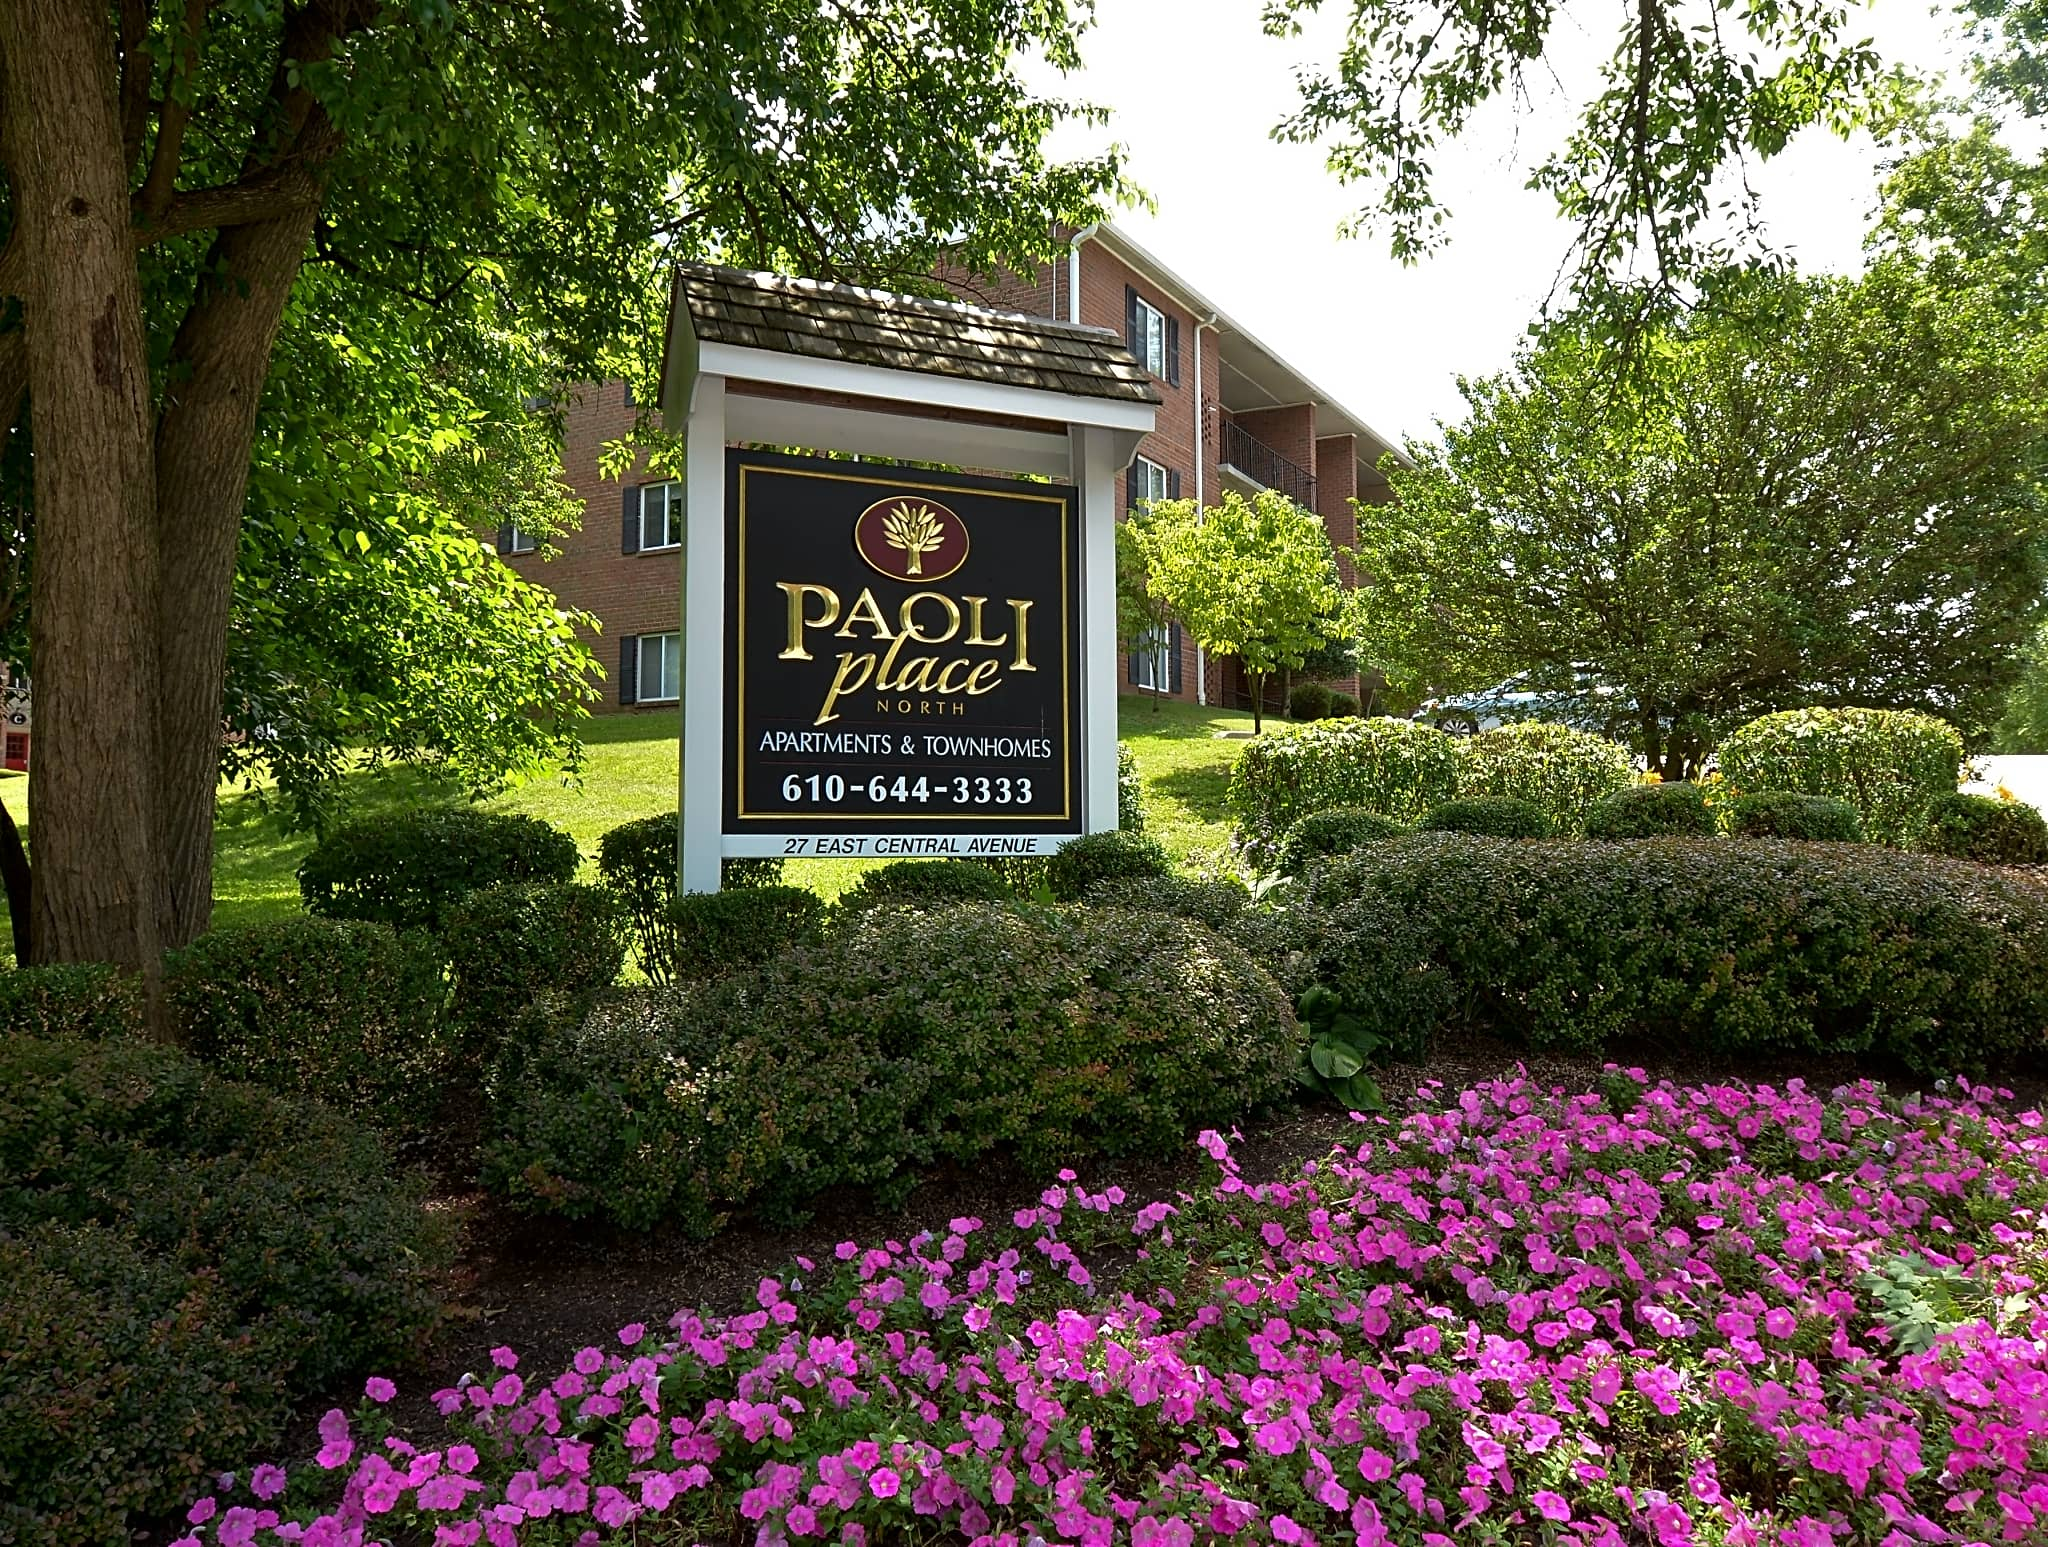 Apartments Near Penn St Great Valley Paoli Place for Pennsylvania State University Great Valley Students in Malvern, PA